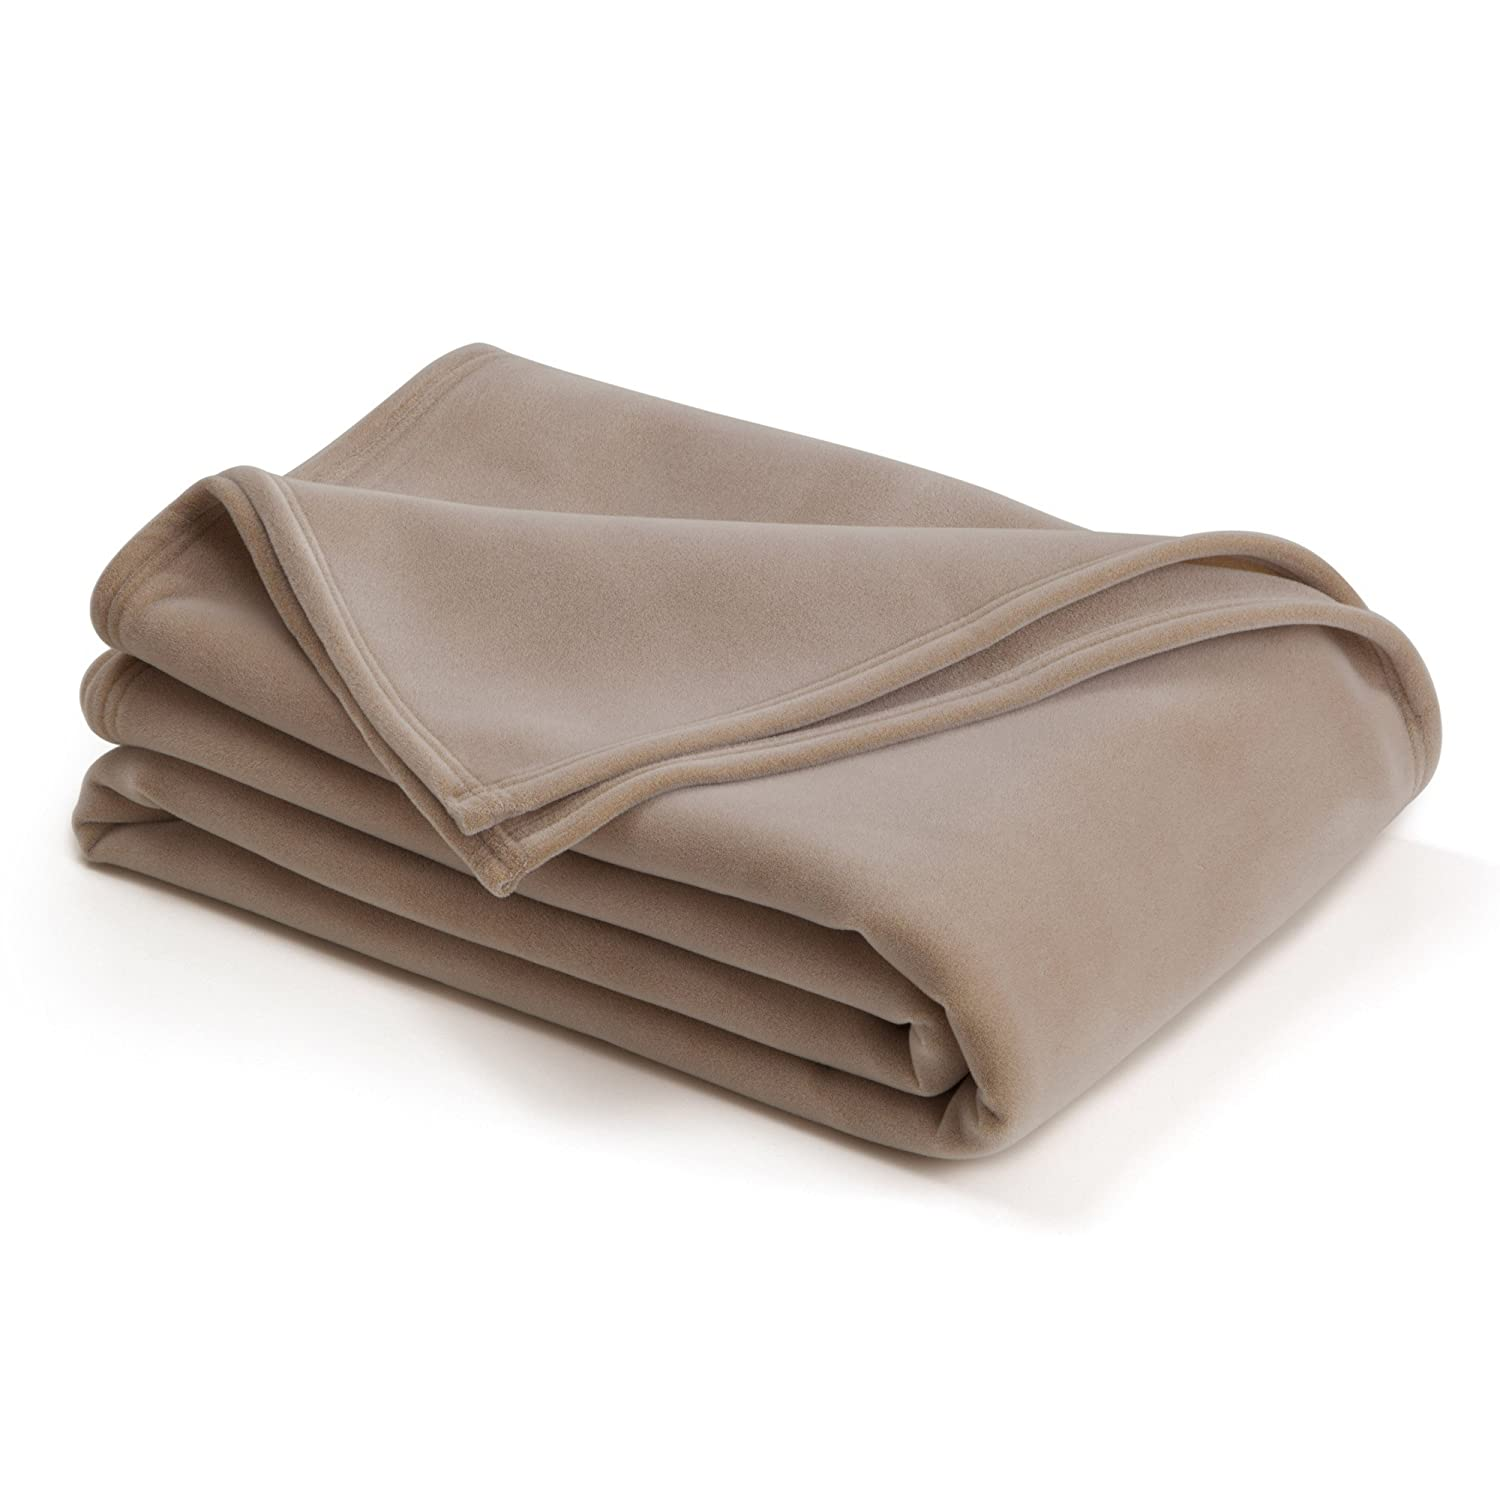 Amazon.com: The Original Vellux Blanket - King, Soft, Warm, Insulated,  Pet-Friendly, Home Bed & Sofa - Tan: Home & Kitchen